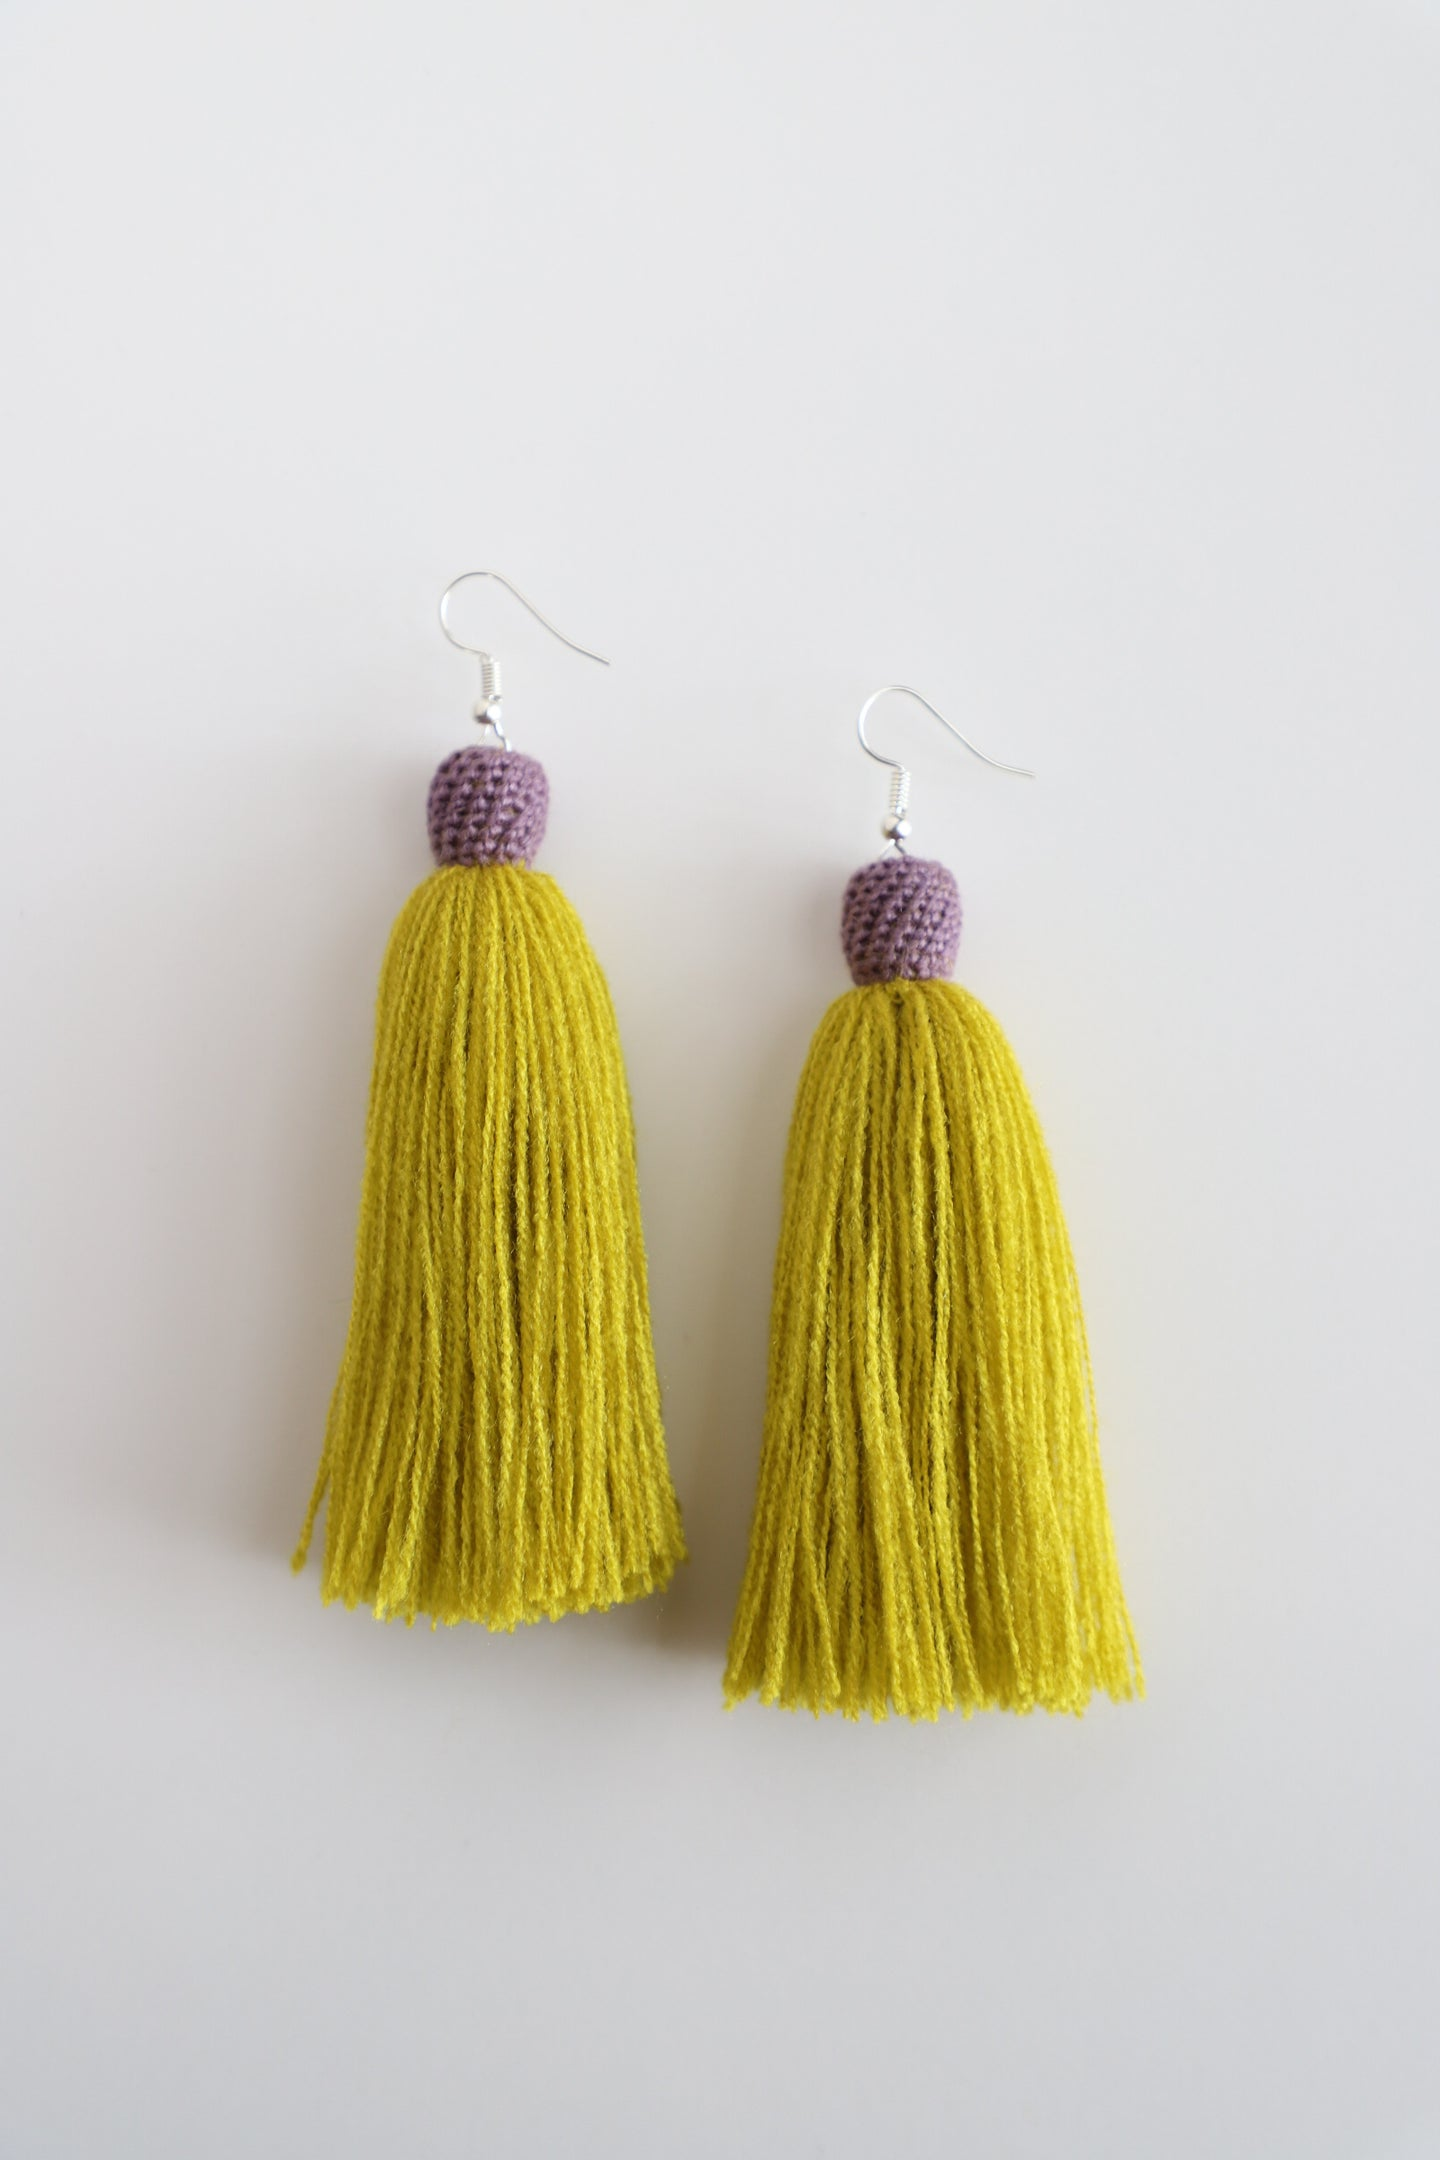 The Carolina Tassel Earring in Canary and Lavender